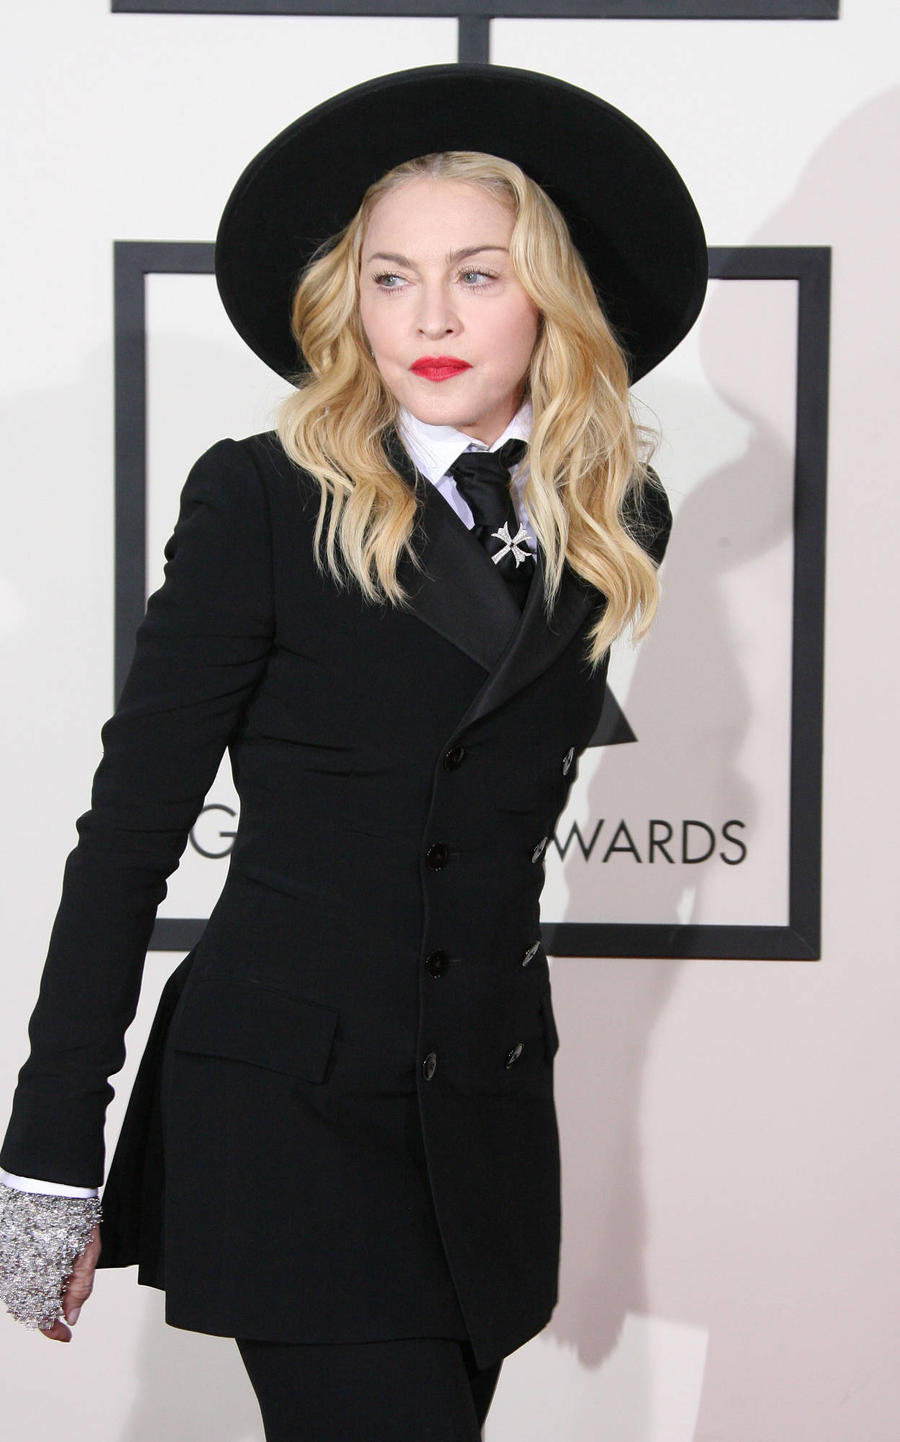 Madonna And Guy Ritchie Set For Wednesday Court Battle